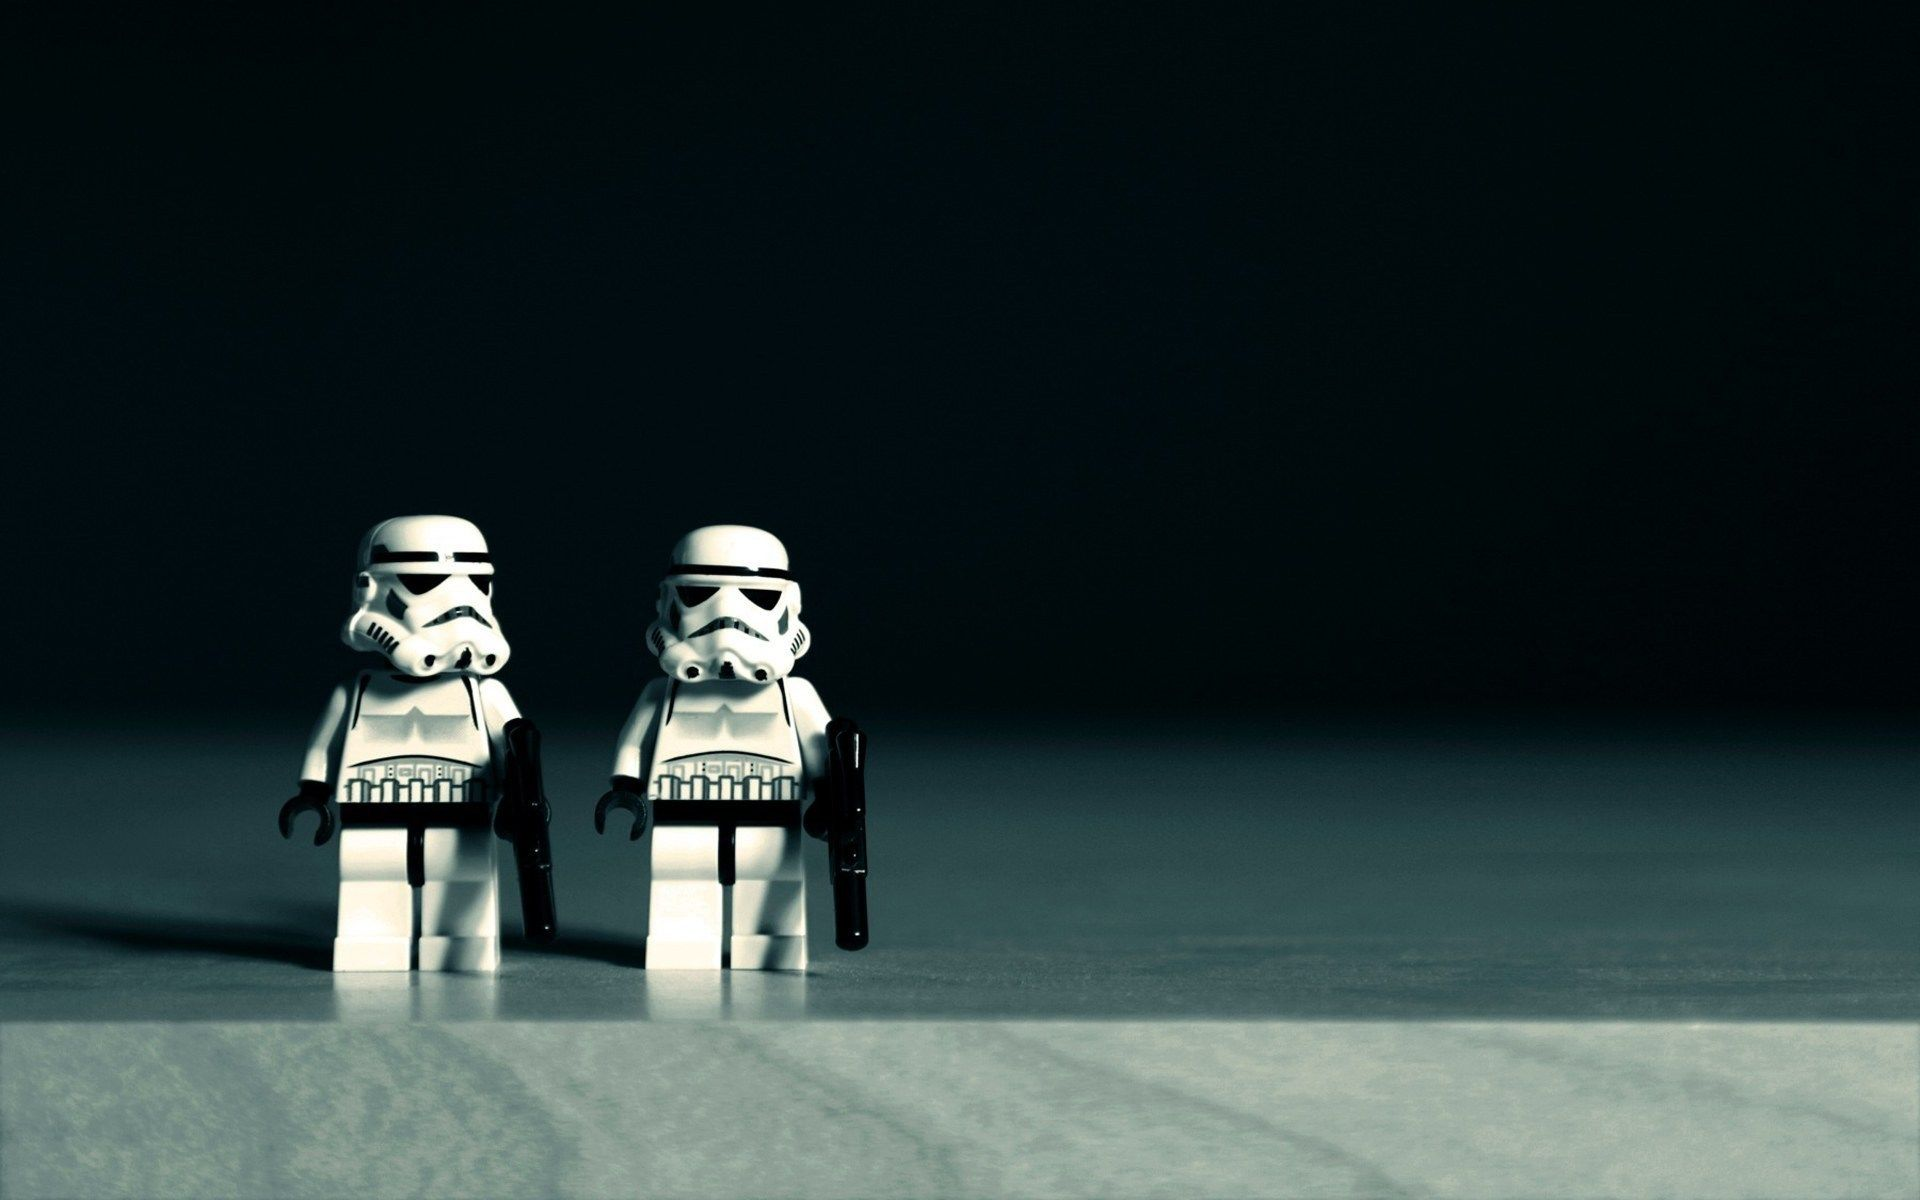 Lego Star Wars HD Wallpaper